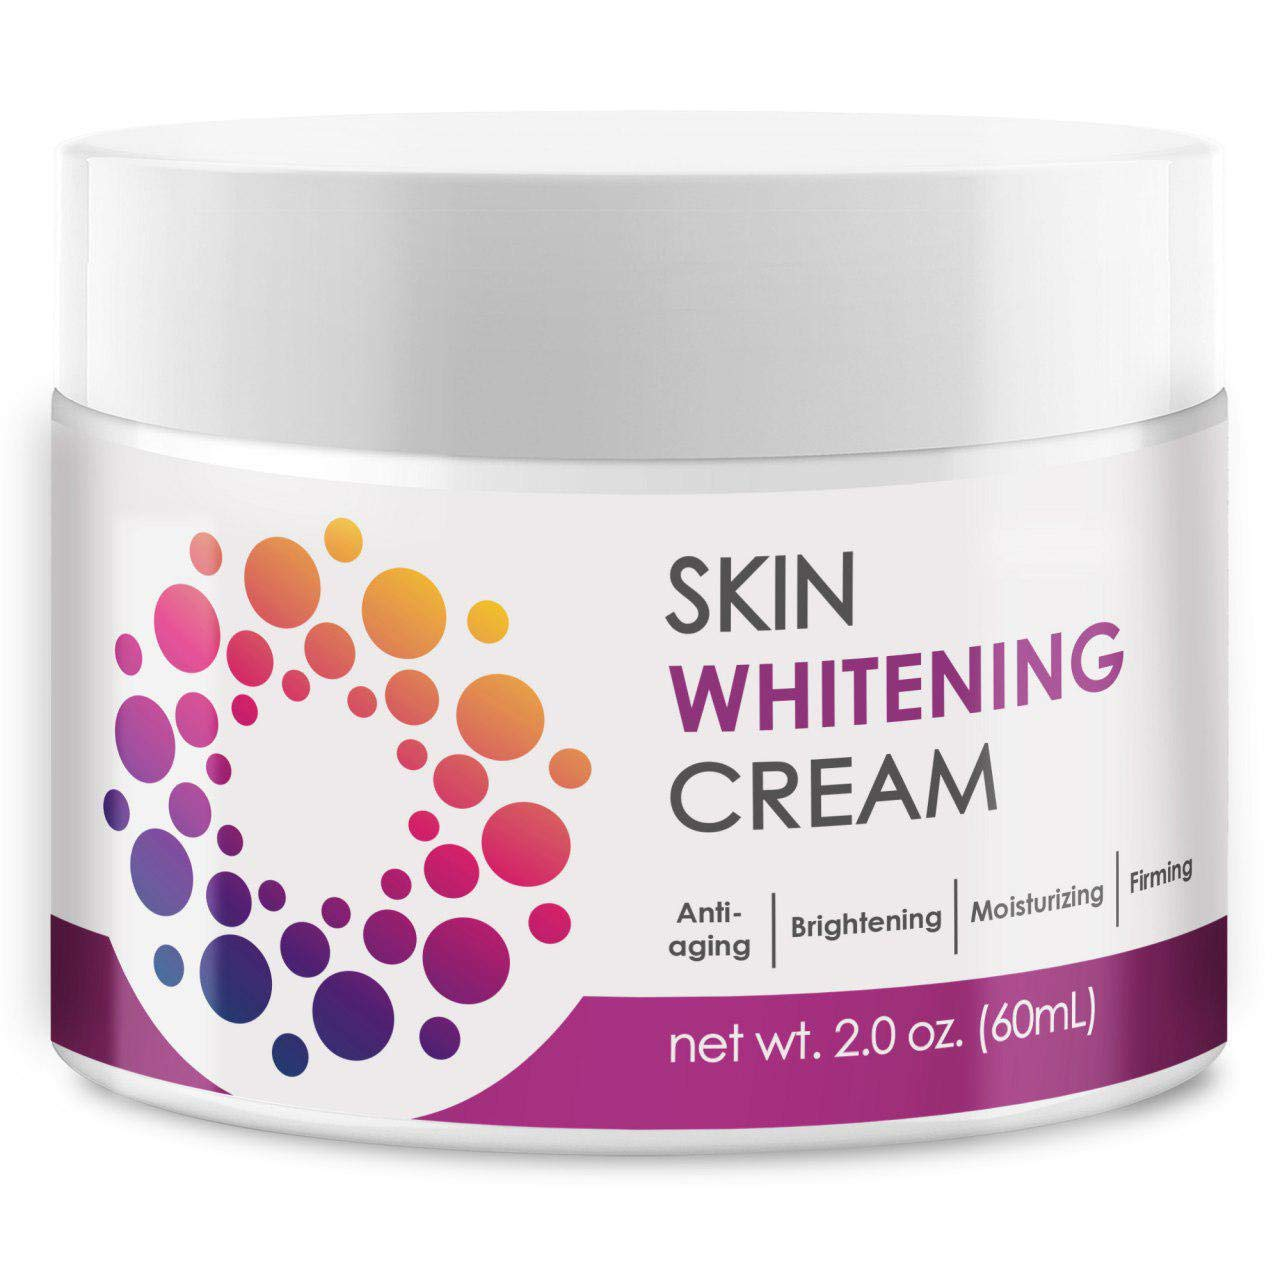 ACTIVSCIENCE Whitening Cream - Powerful Skin Lightening Cream for Face & Body. Dark Spot, Melasma & Hyperpigmentation Treatment. 2 fl oz. by ACTIVSCIENCE